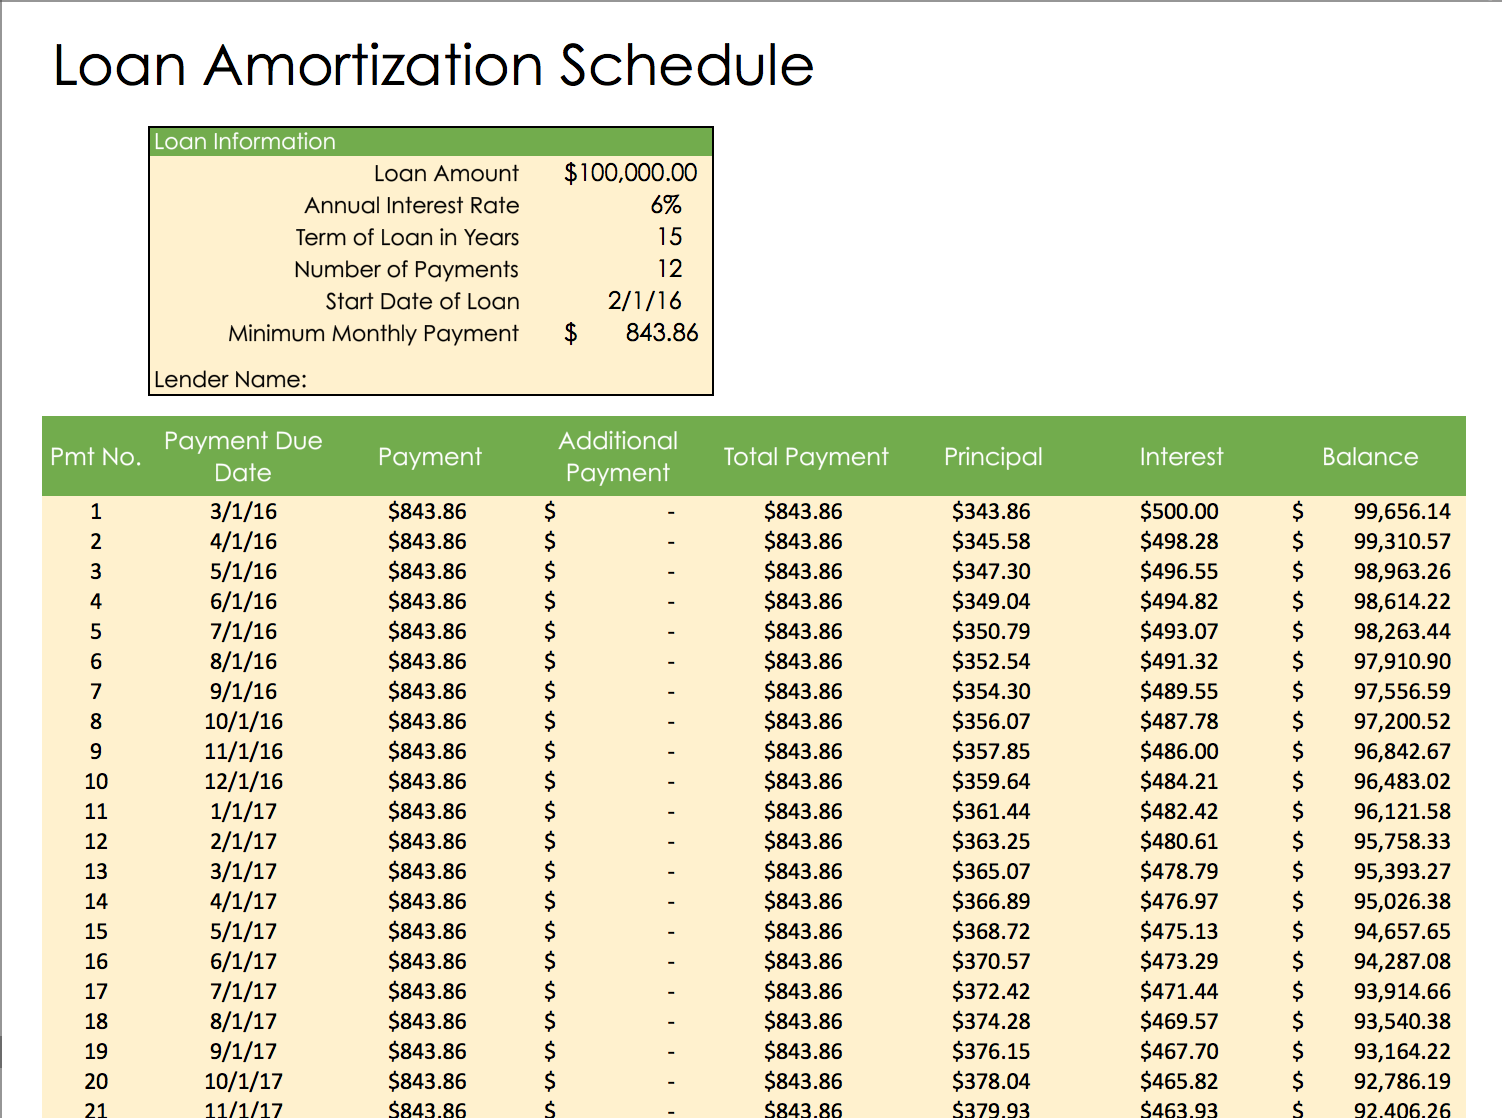 Amortization Template | Loan Amortization Templates Loan Amortization Schedule By